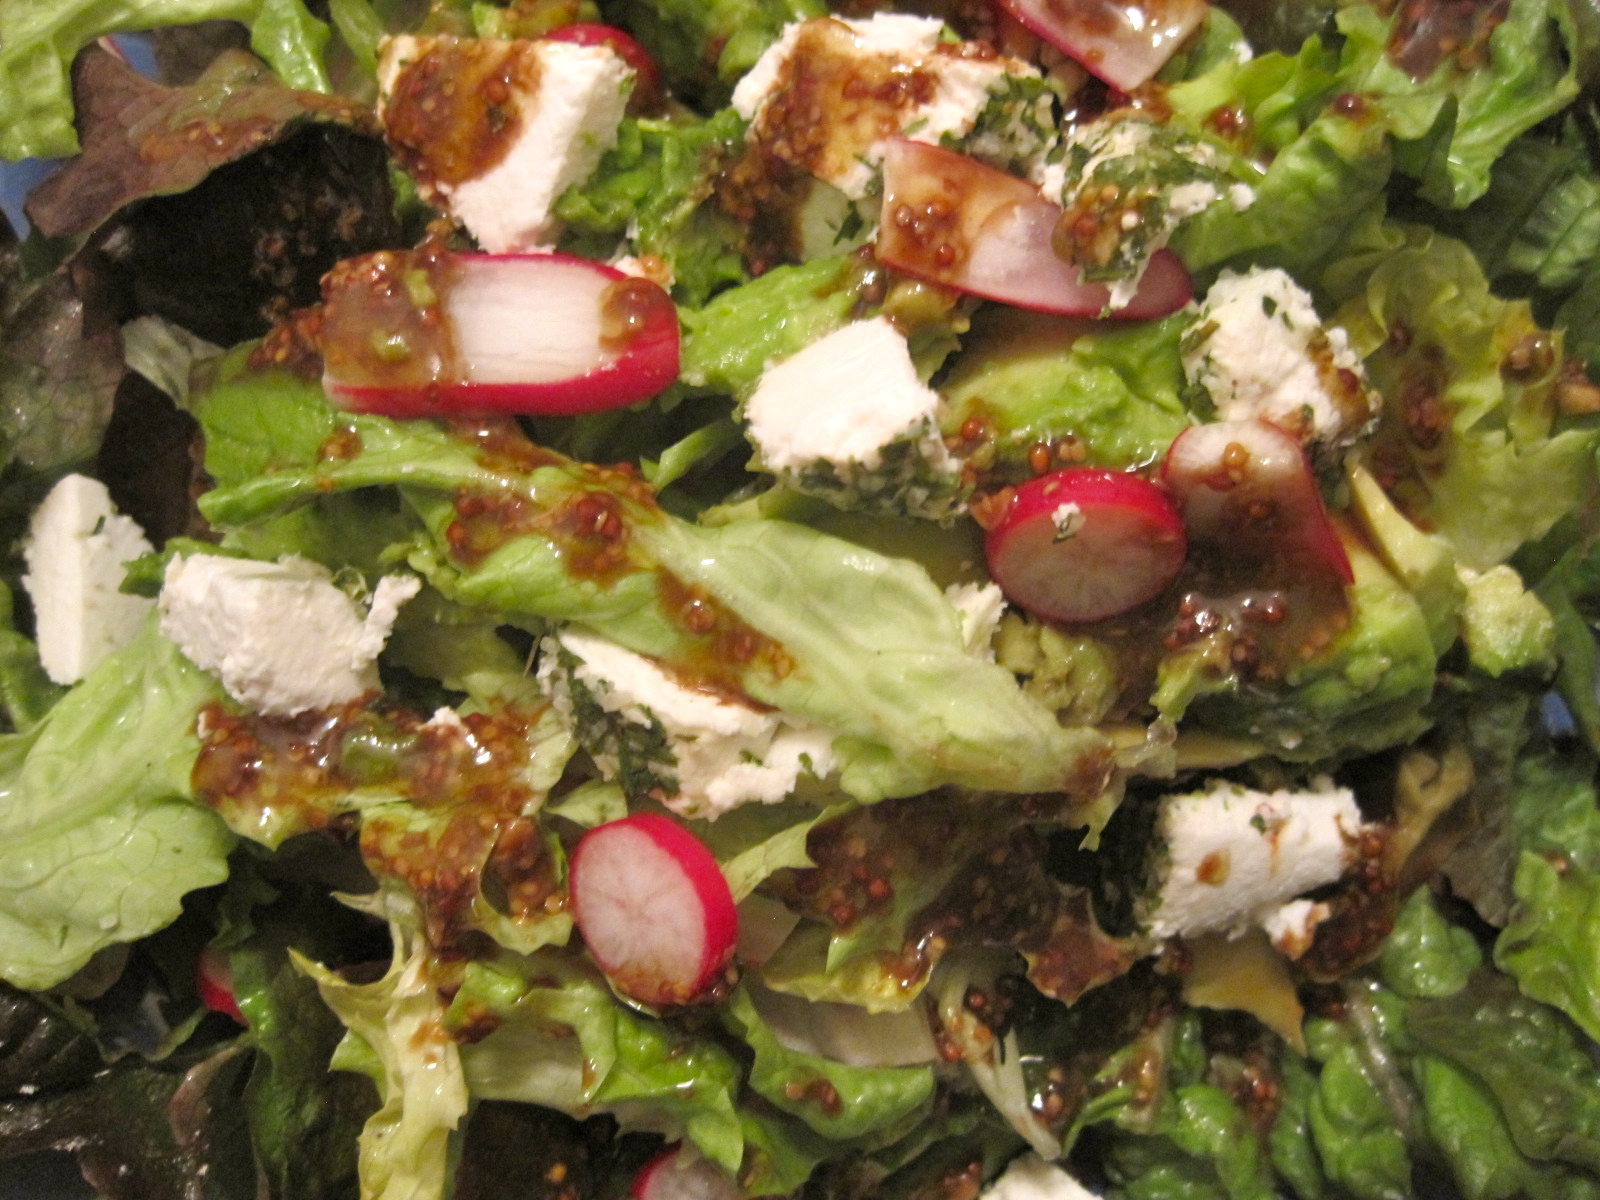 Salad with avocado, radish, and farm fresh goat cheese covered in ...